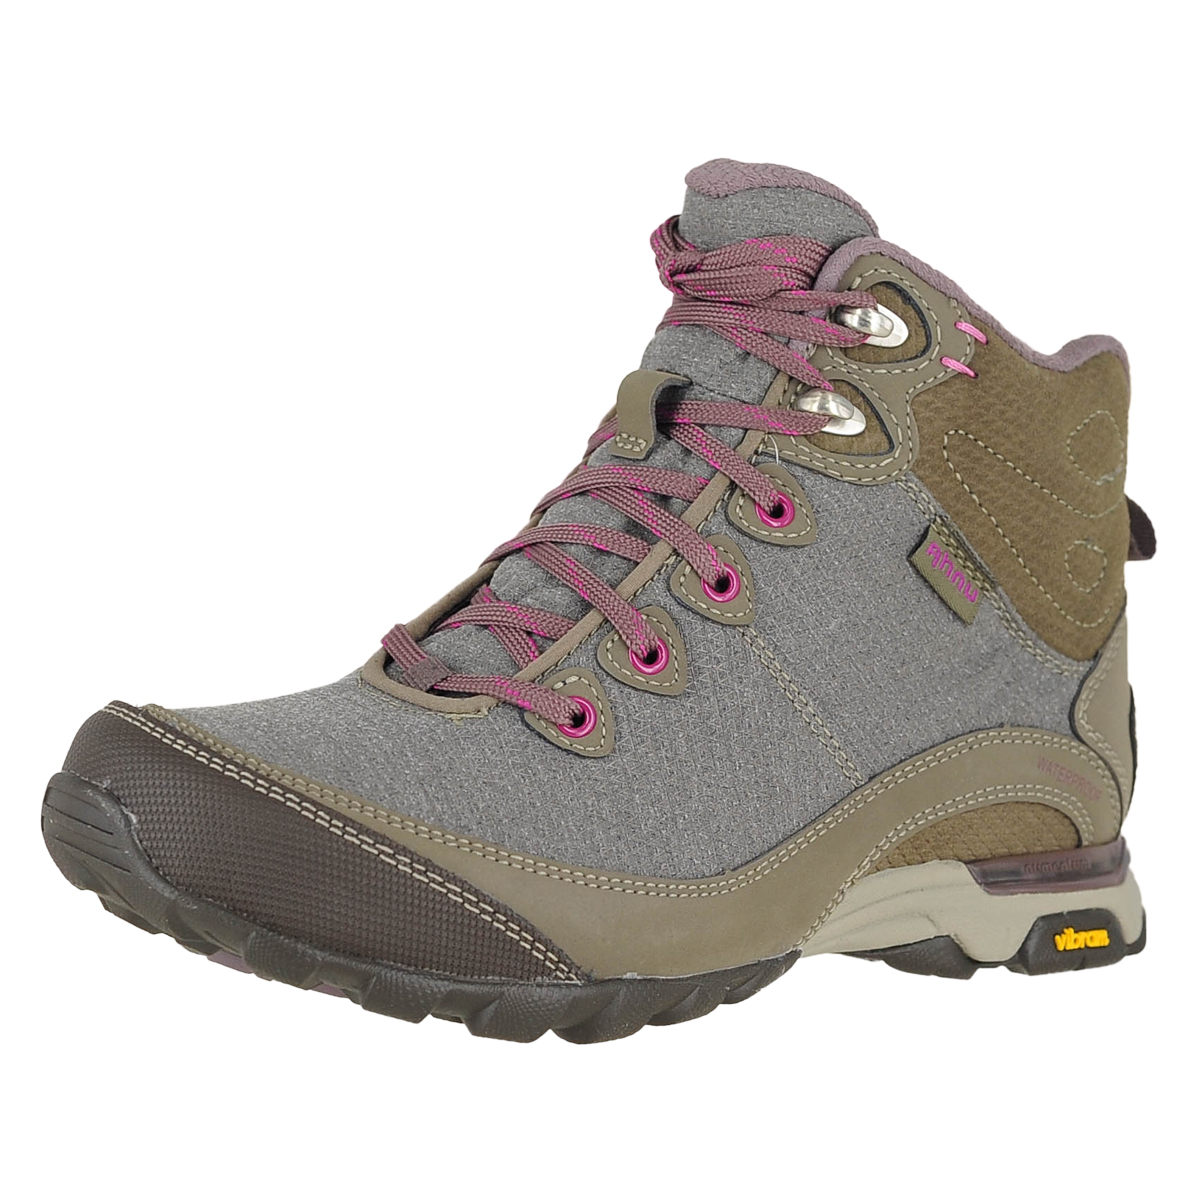 8076f512f978 Details about Ahnu By Teva Sugarpine Ii Wp Boot Walnut Womens Hiking Boots  Size 10M